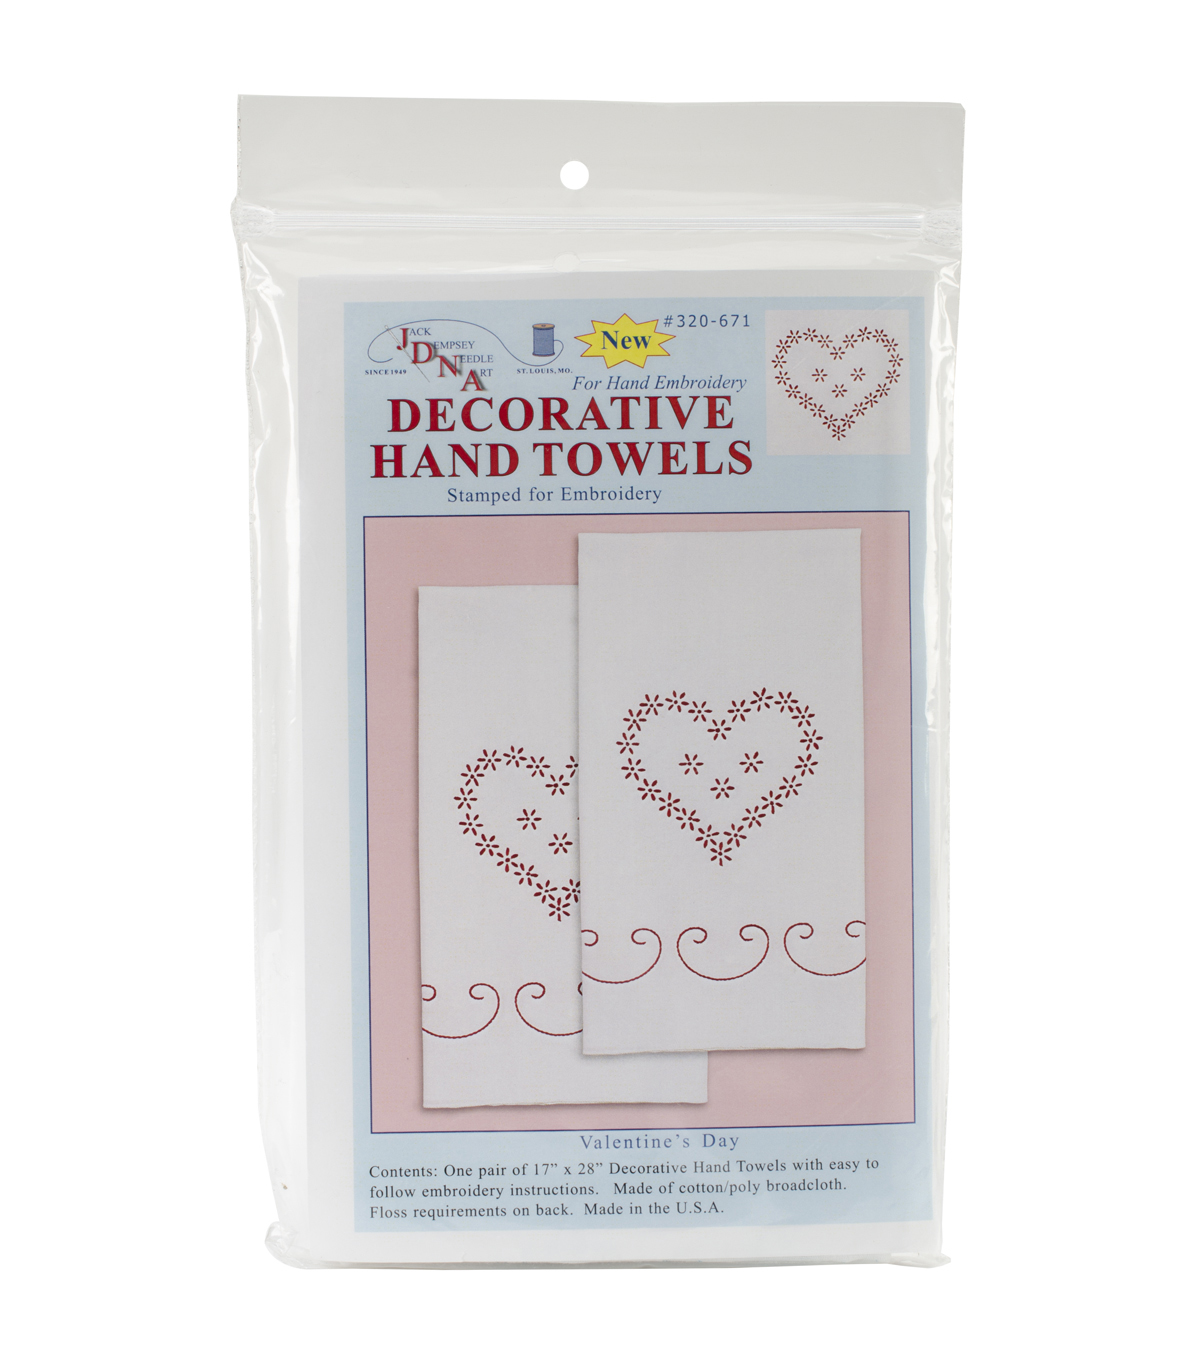 Jack Dempsey Stamped Decorative Hand Towel Valentine's Day White